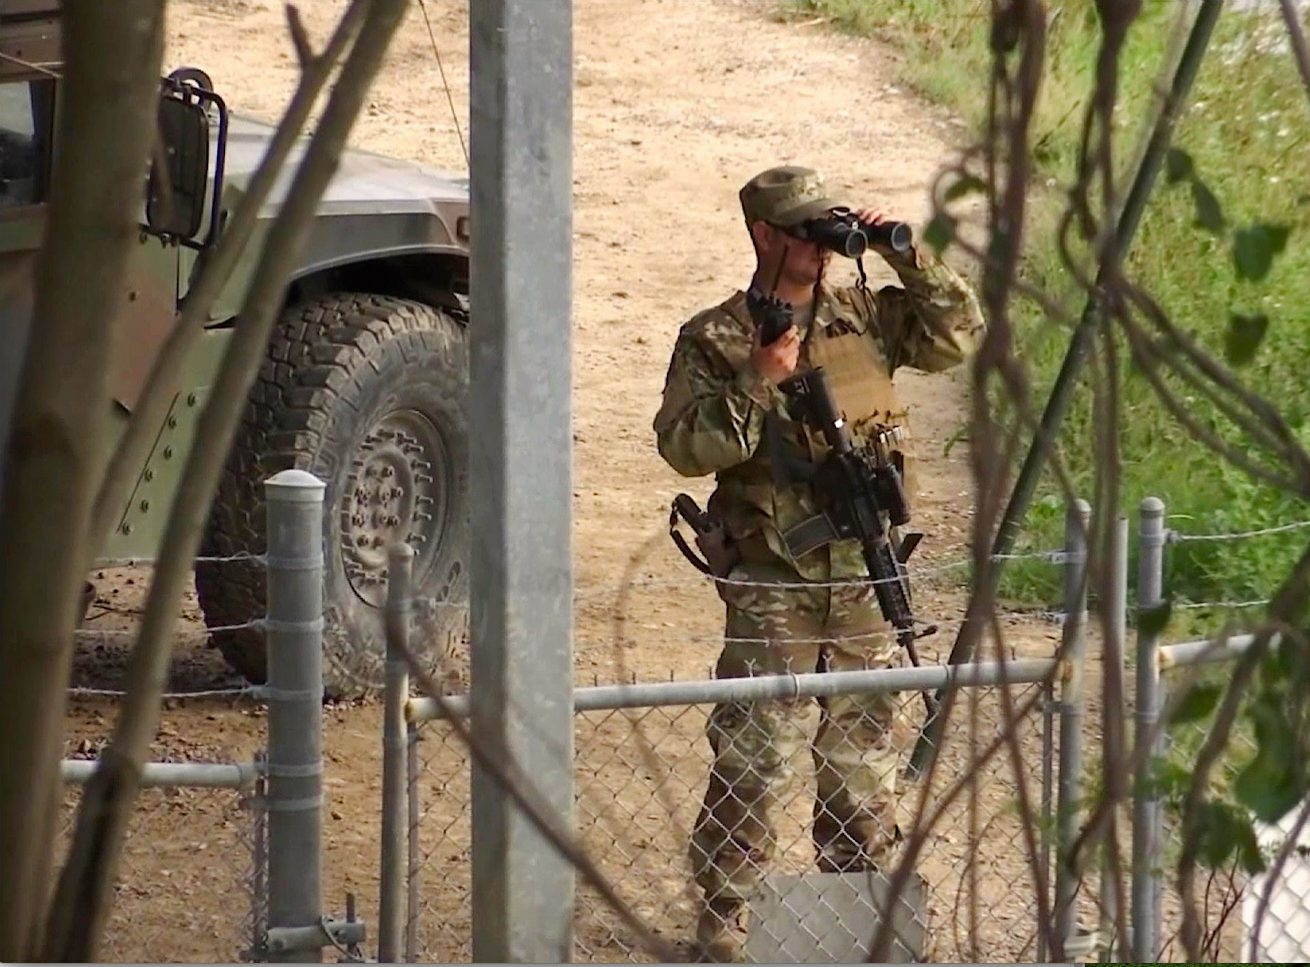 Inside the Beltway: Homegrown Texas border troops get thumbs up